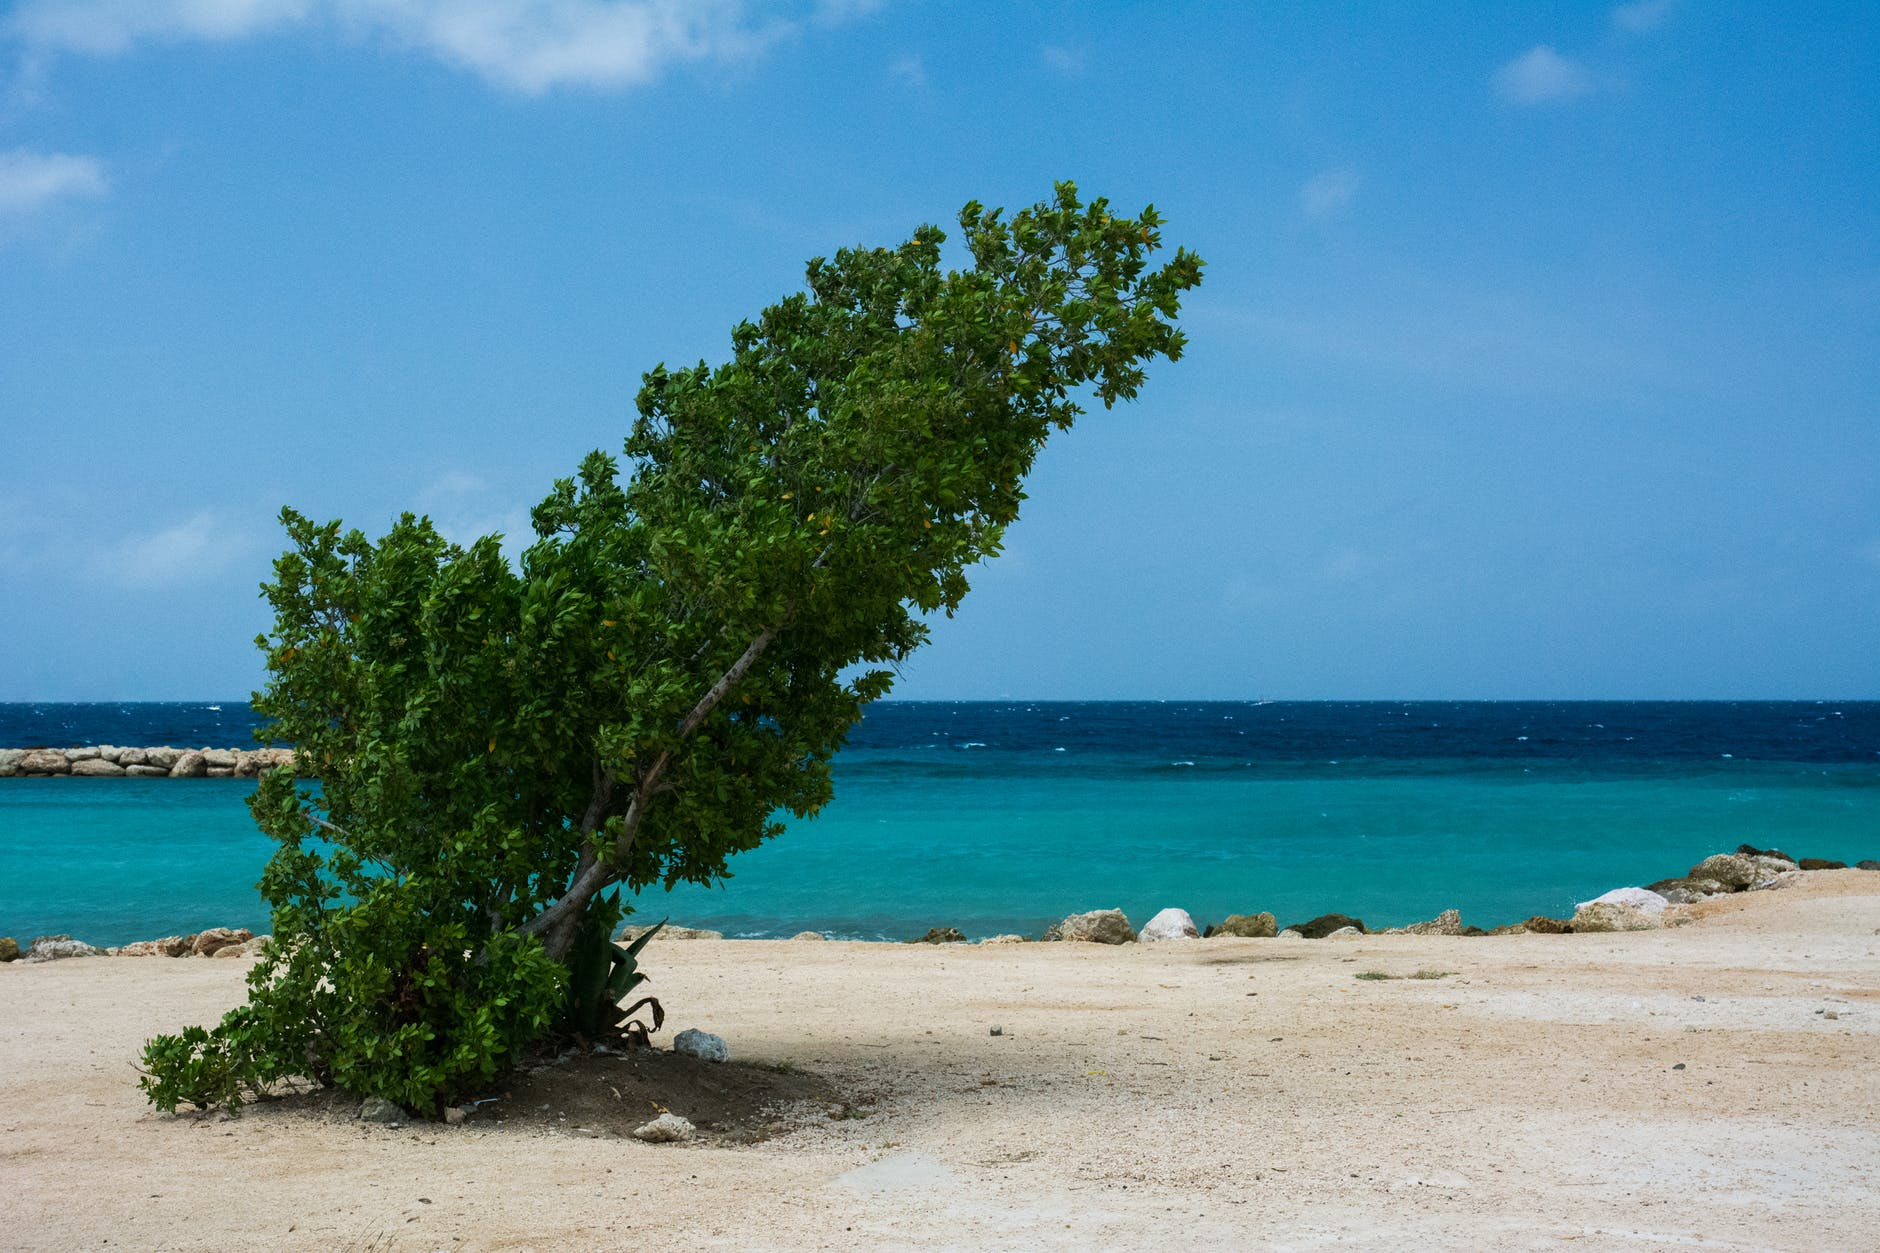 sea-beach-storm-tree.jpg